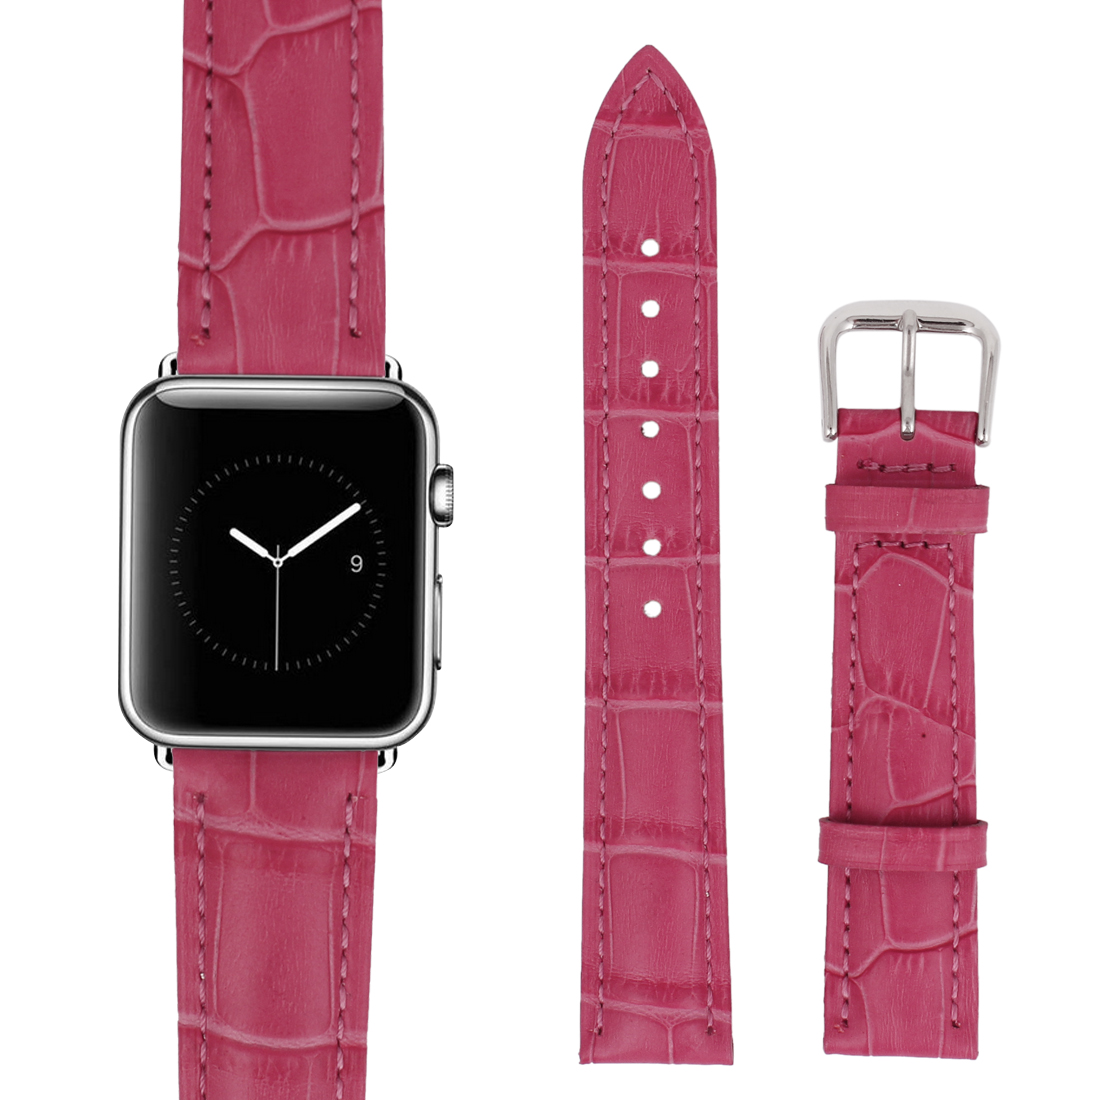 Faux Leather Steel Buckle Mens Business Sport Wrist Watch Band Strap Belt Pink